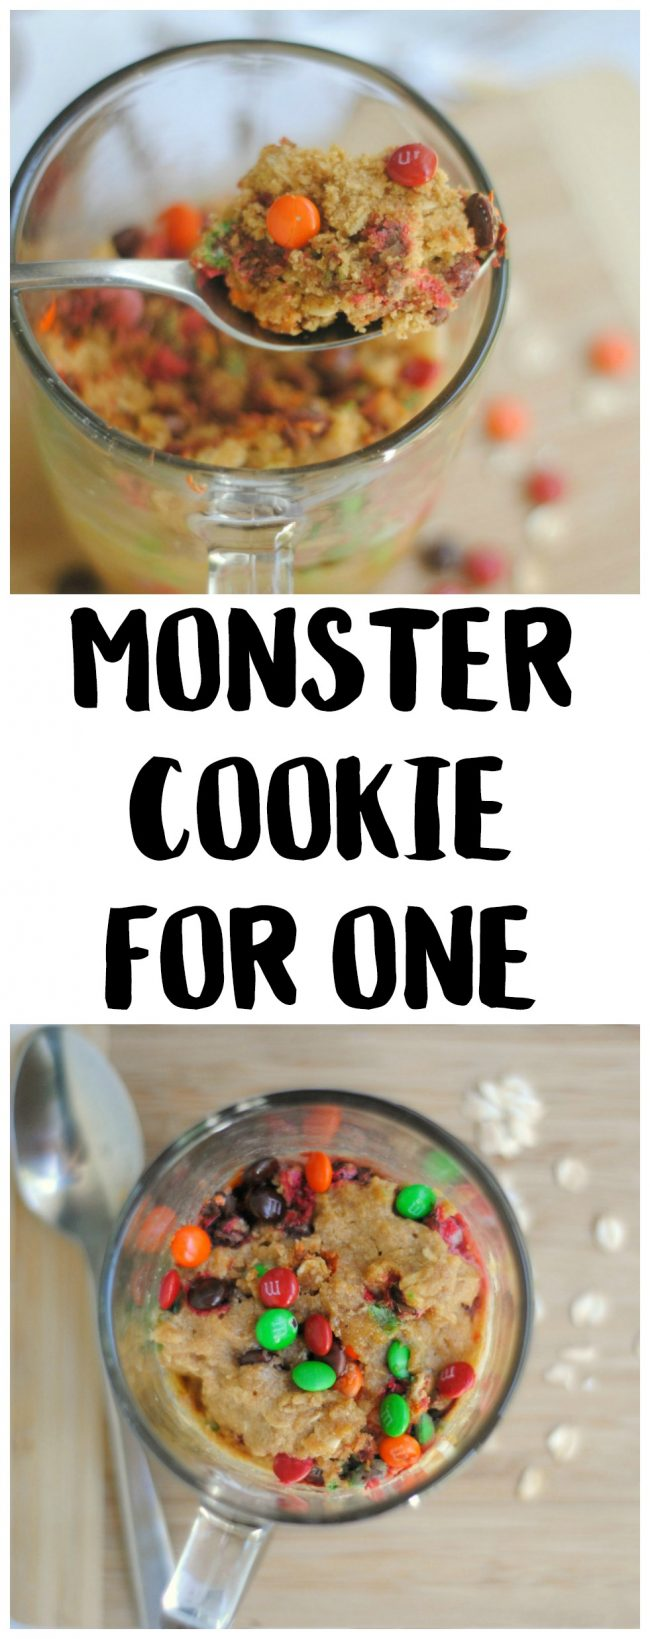 Is your sweet tooth craving something yummy? Try one of these super easy Monster Cookies! Make them with just a few ingredients- they take just one minute in the microwave and you can make them in your favorite cute mug! They have peanut butter {you can omit to make them peanut-free}, oats, and of course, M&M's candy.